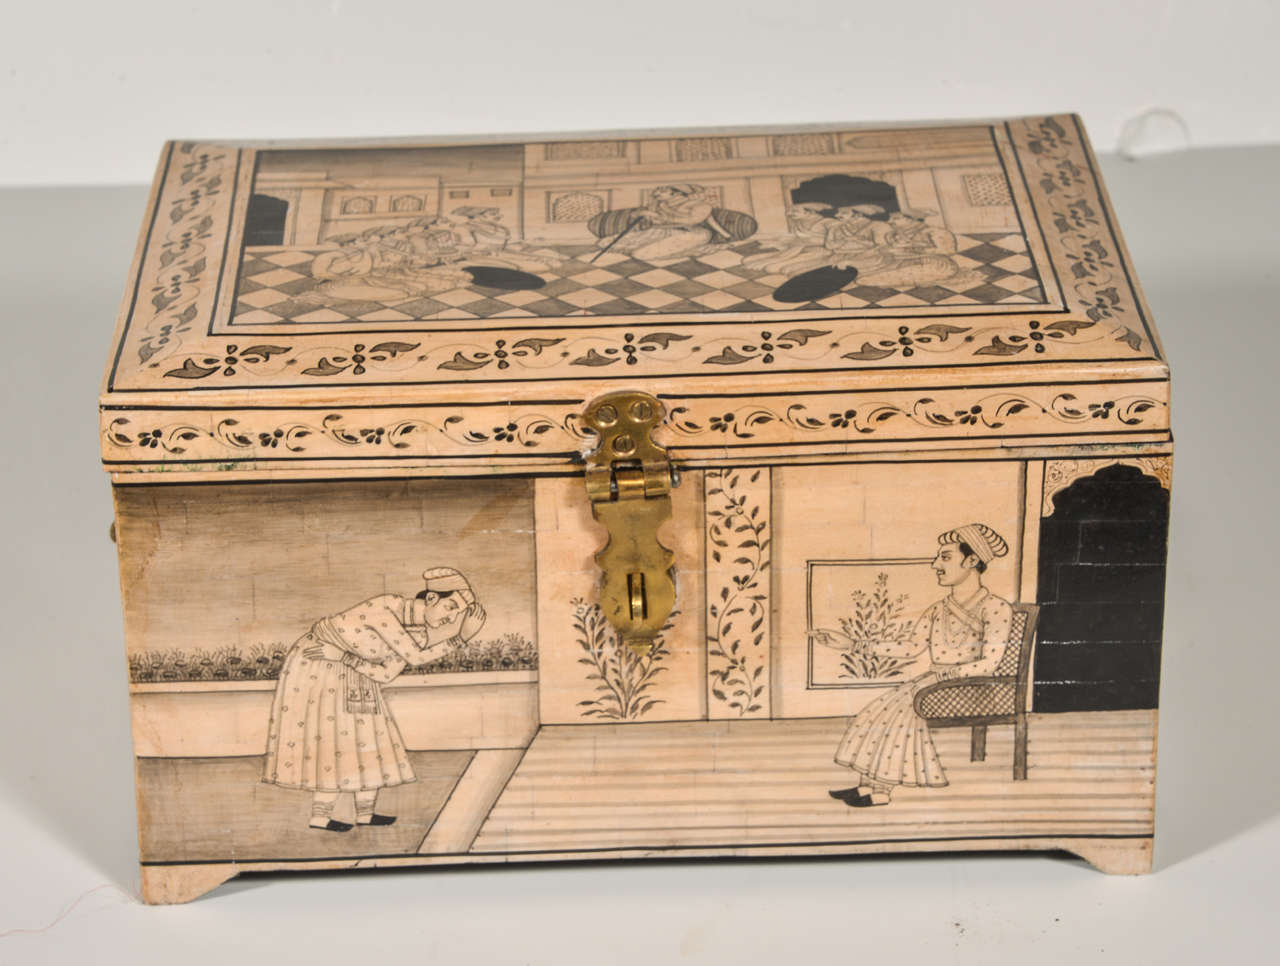 Box of camel bone veneer, incised decoration in black.  Brass handles on the side with a hinged lid.  Uttar Pradesh region of India.  Inner compartment tray with storage beneath and secret drawers on the side.